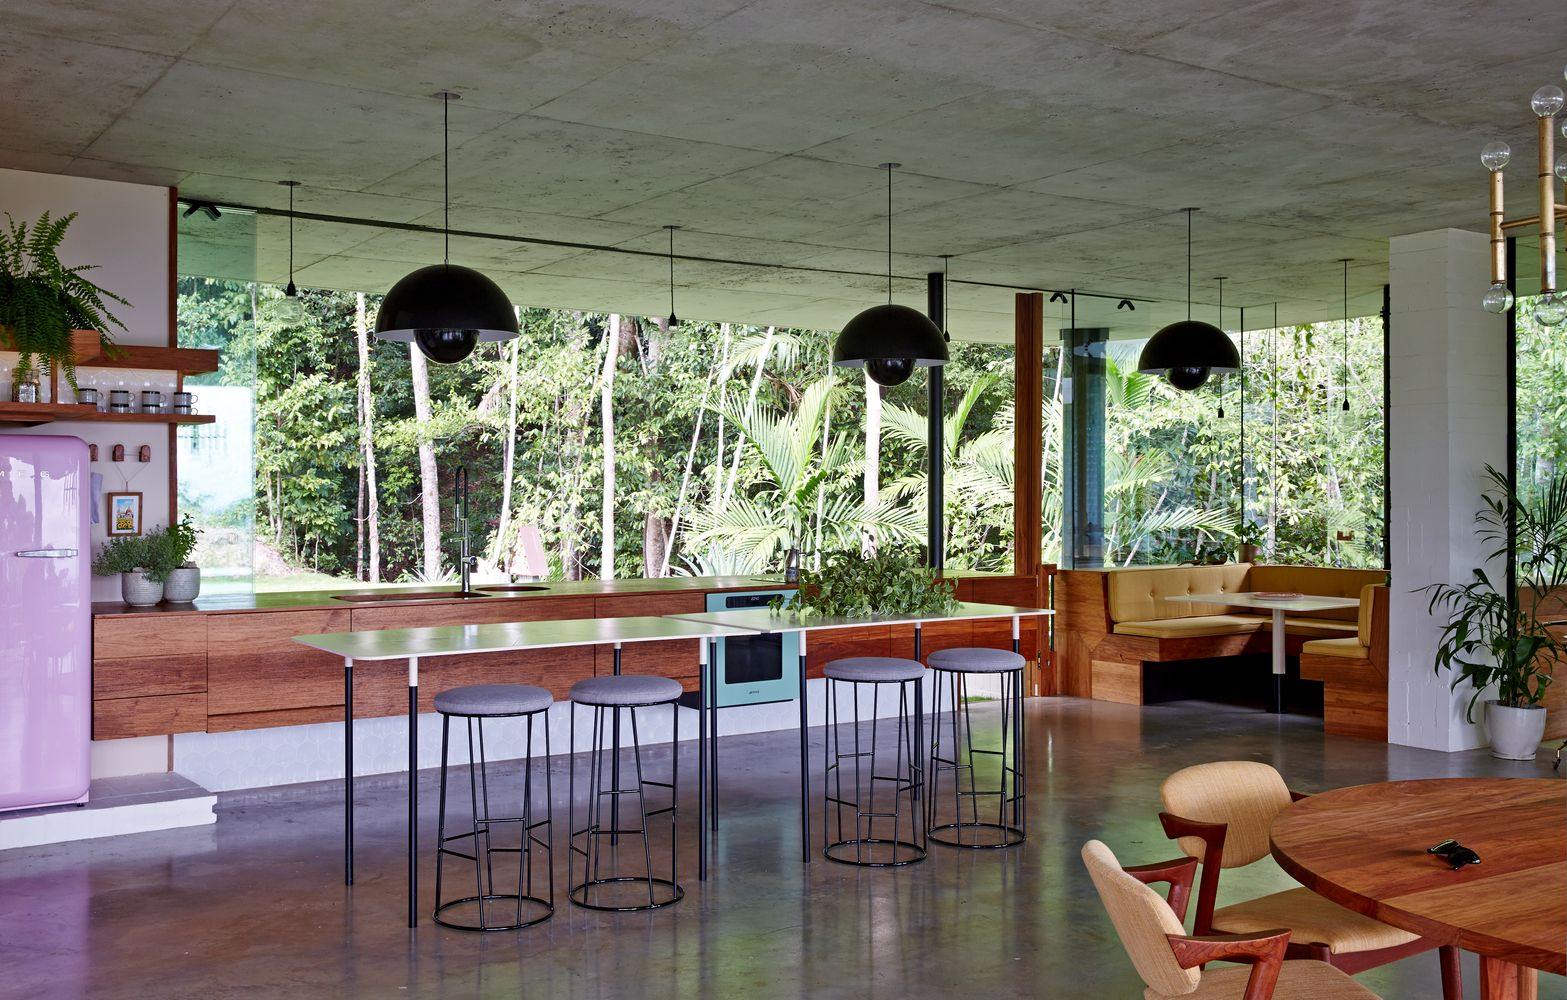 Elegant Planchonella House, Cairns, Australia Designed By Architect Jesse Bennett  And Interior Design By Anne · InnendesignWohnzimmerArchitekturpreiseModerne  ...